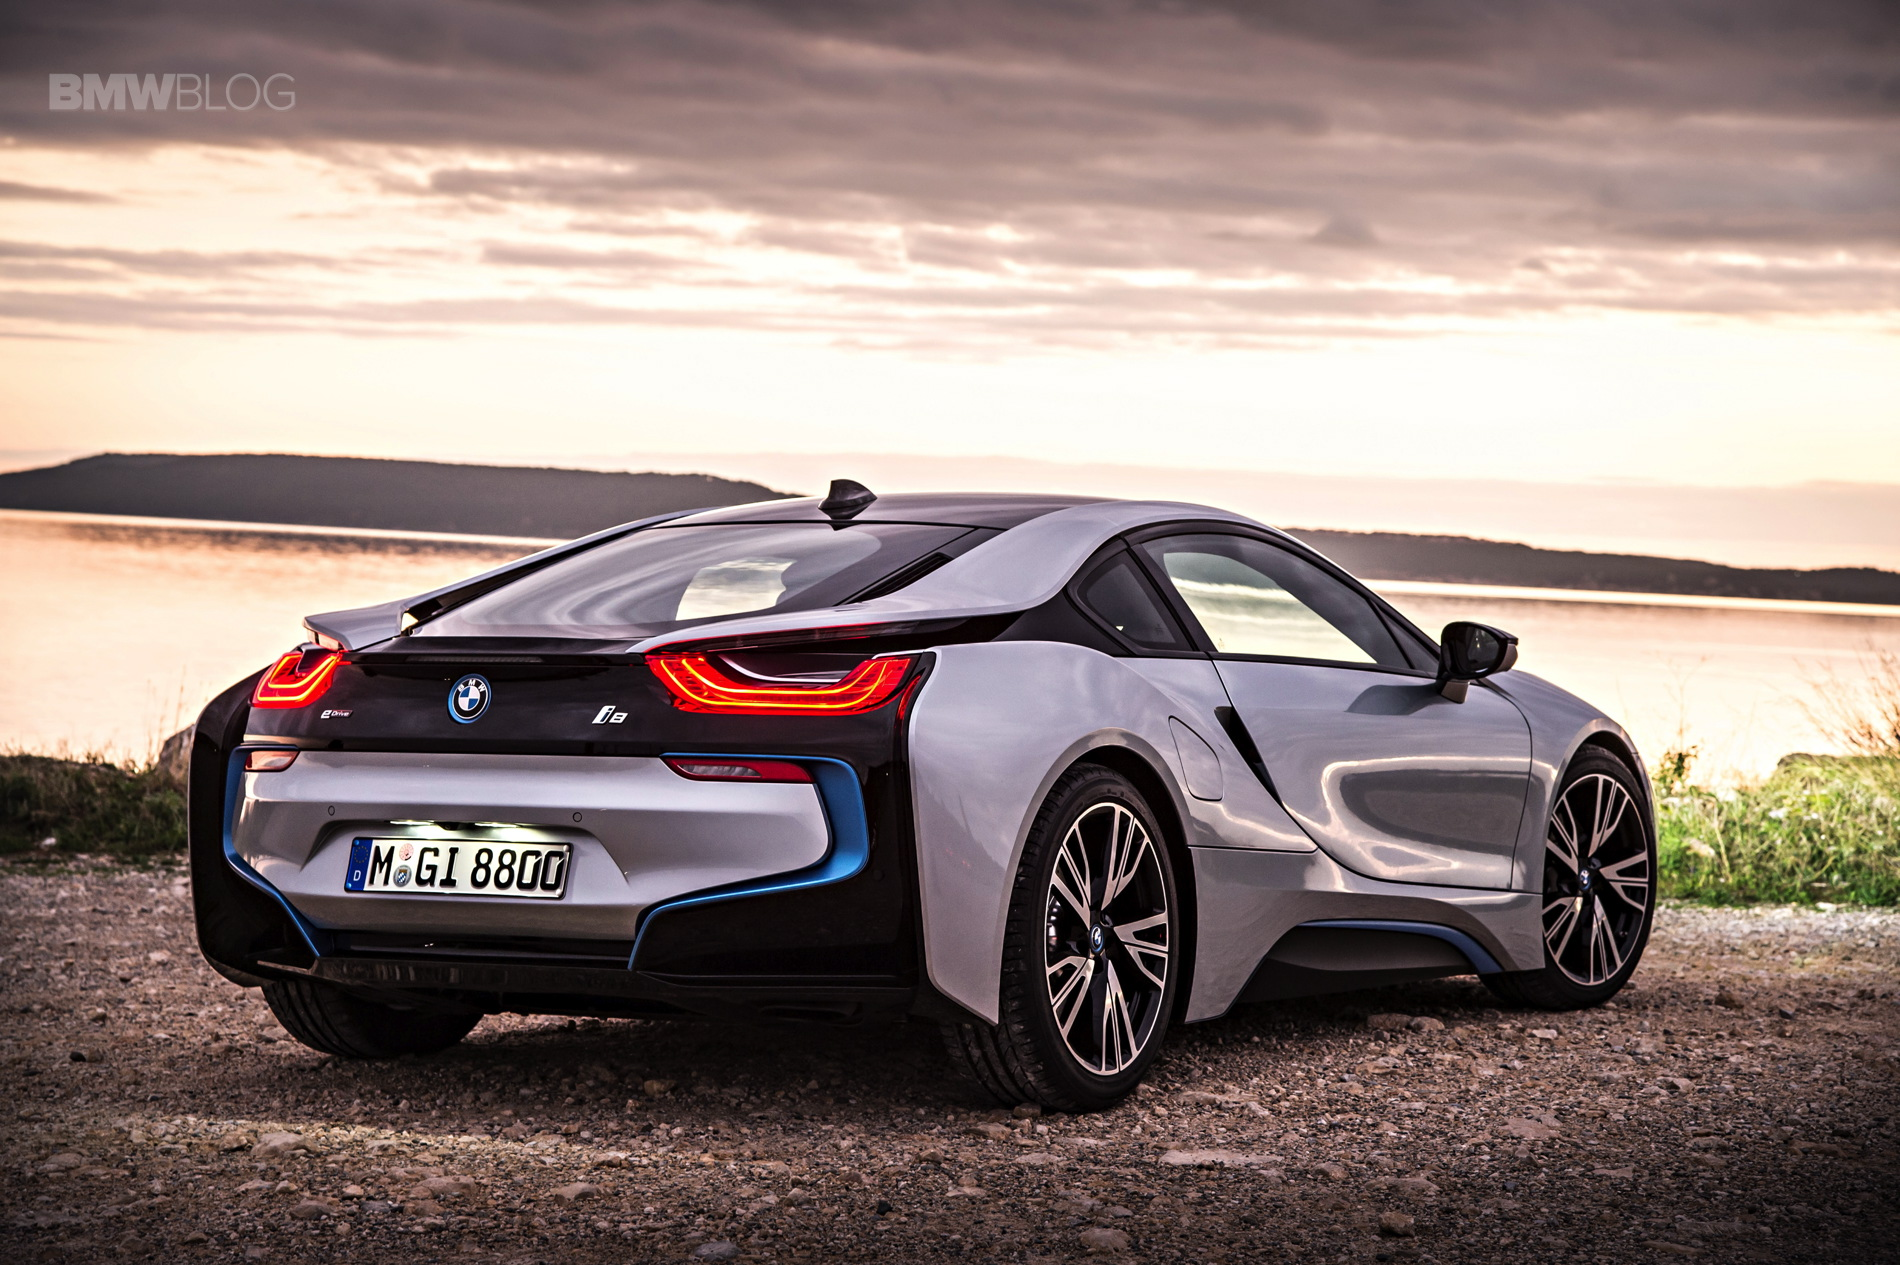 bmw i8 laser lights images 18